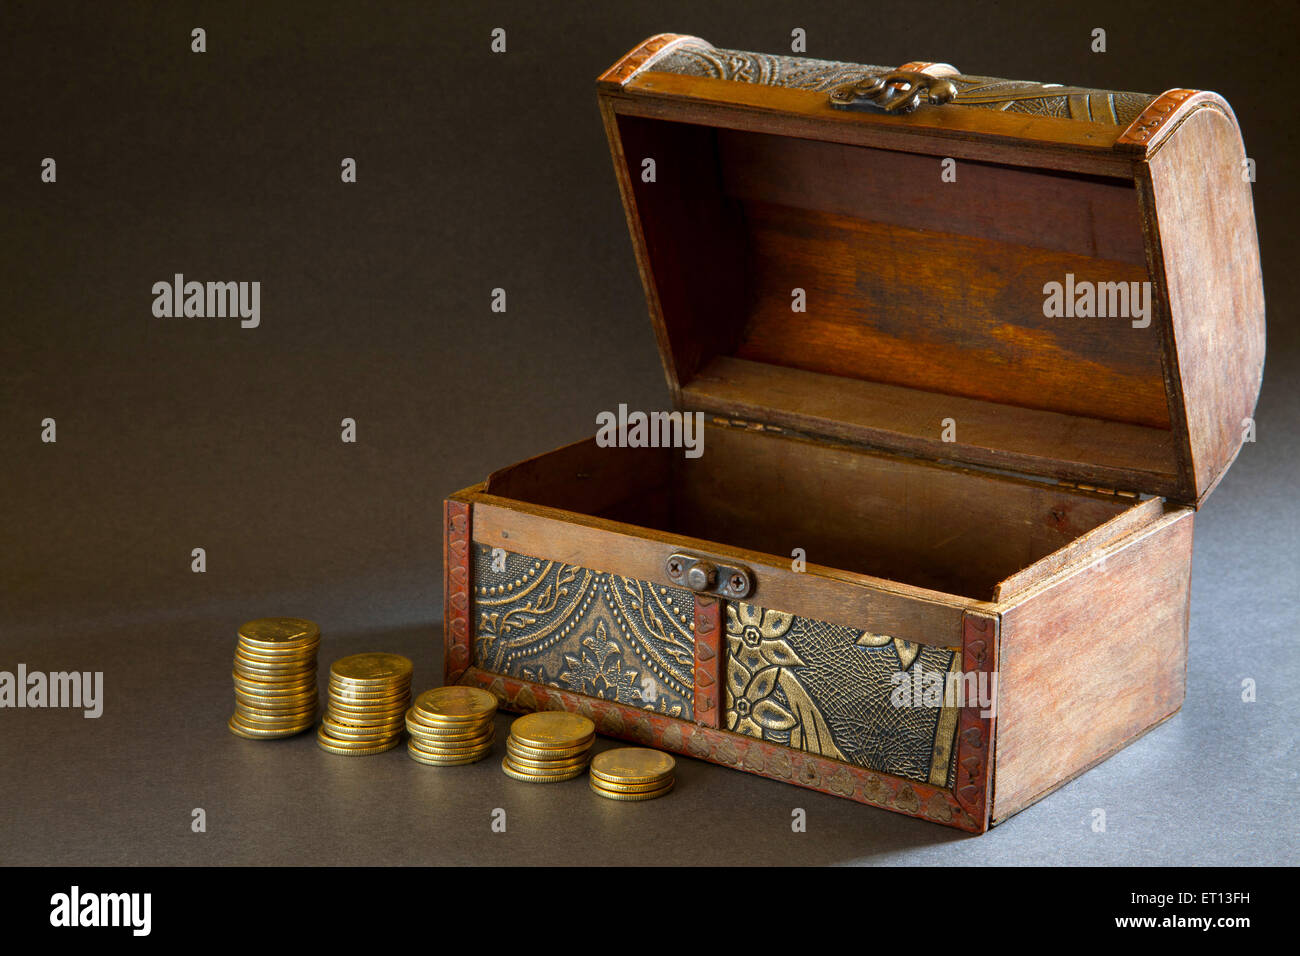 Wooden Jewellery Ornament box with Gold Coin India Asia Nove 2011 - Stock Image